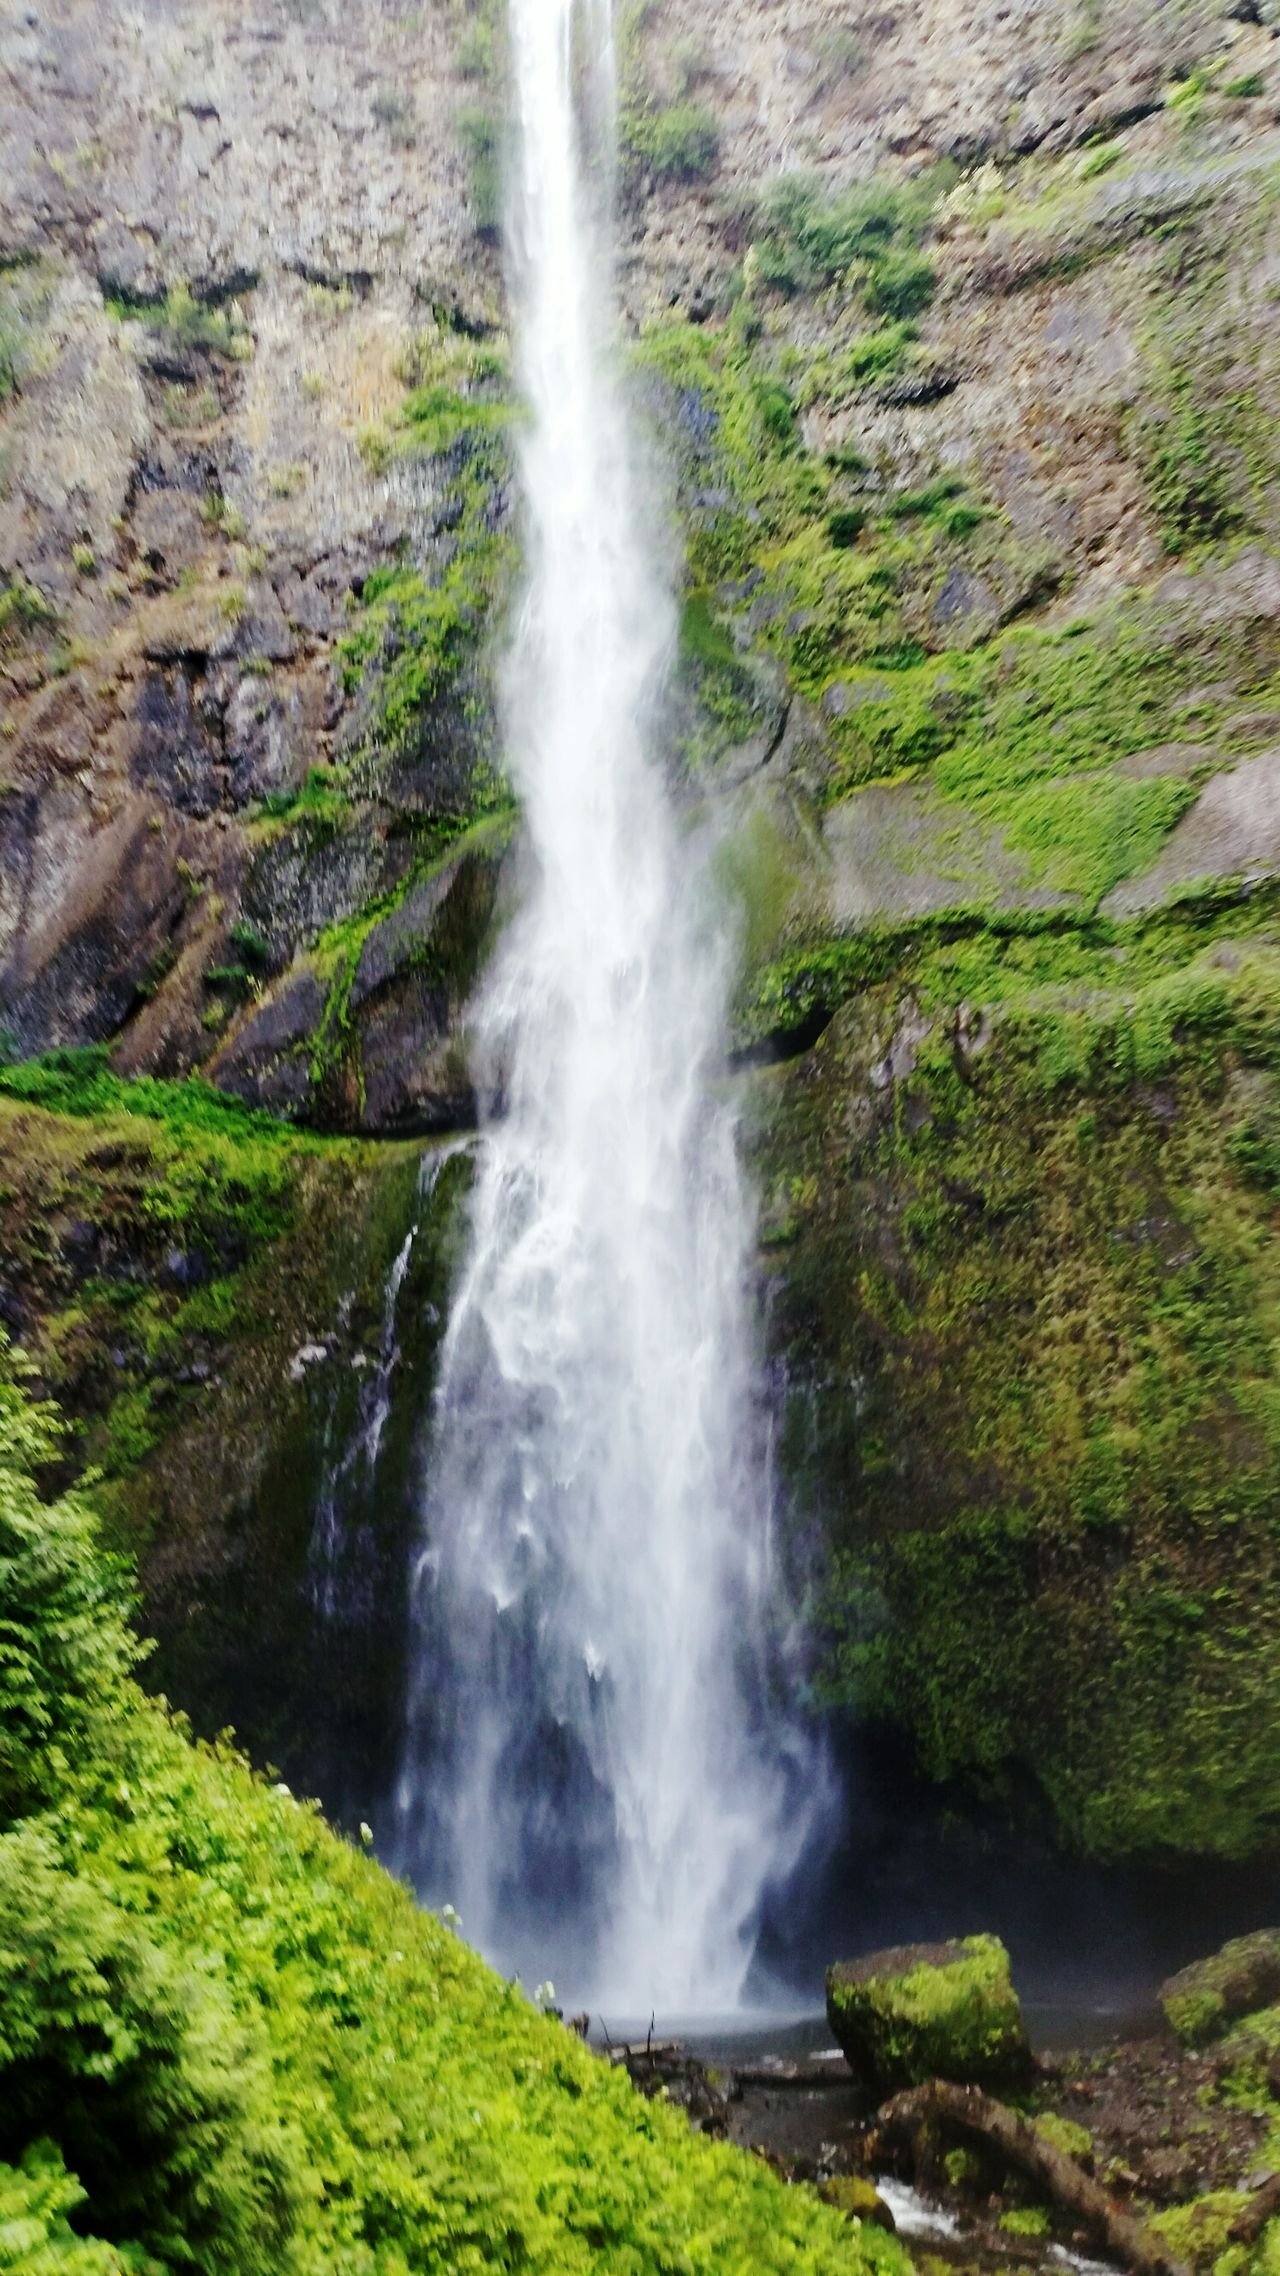 My Year My View Oregon Multnomah Falls  Tranquility Purity Tranquil Scene Long Exposure Rock - Object Outdoors Exercise In Style Travel Destinations Beauty In Nature Motion Waterfall Flowing Water Rehab For The Foot Power In Nature Freshness Beauty In Nature Scenics No People Nature Water Day